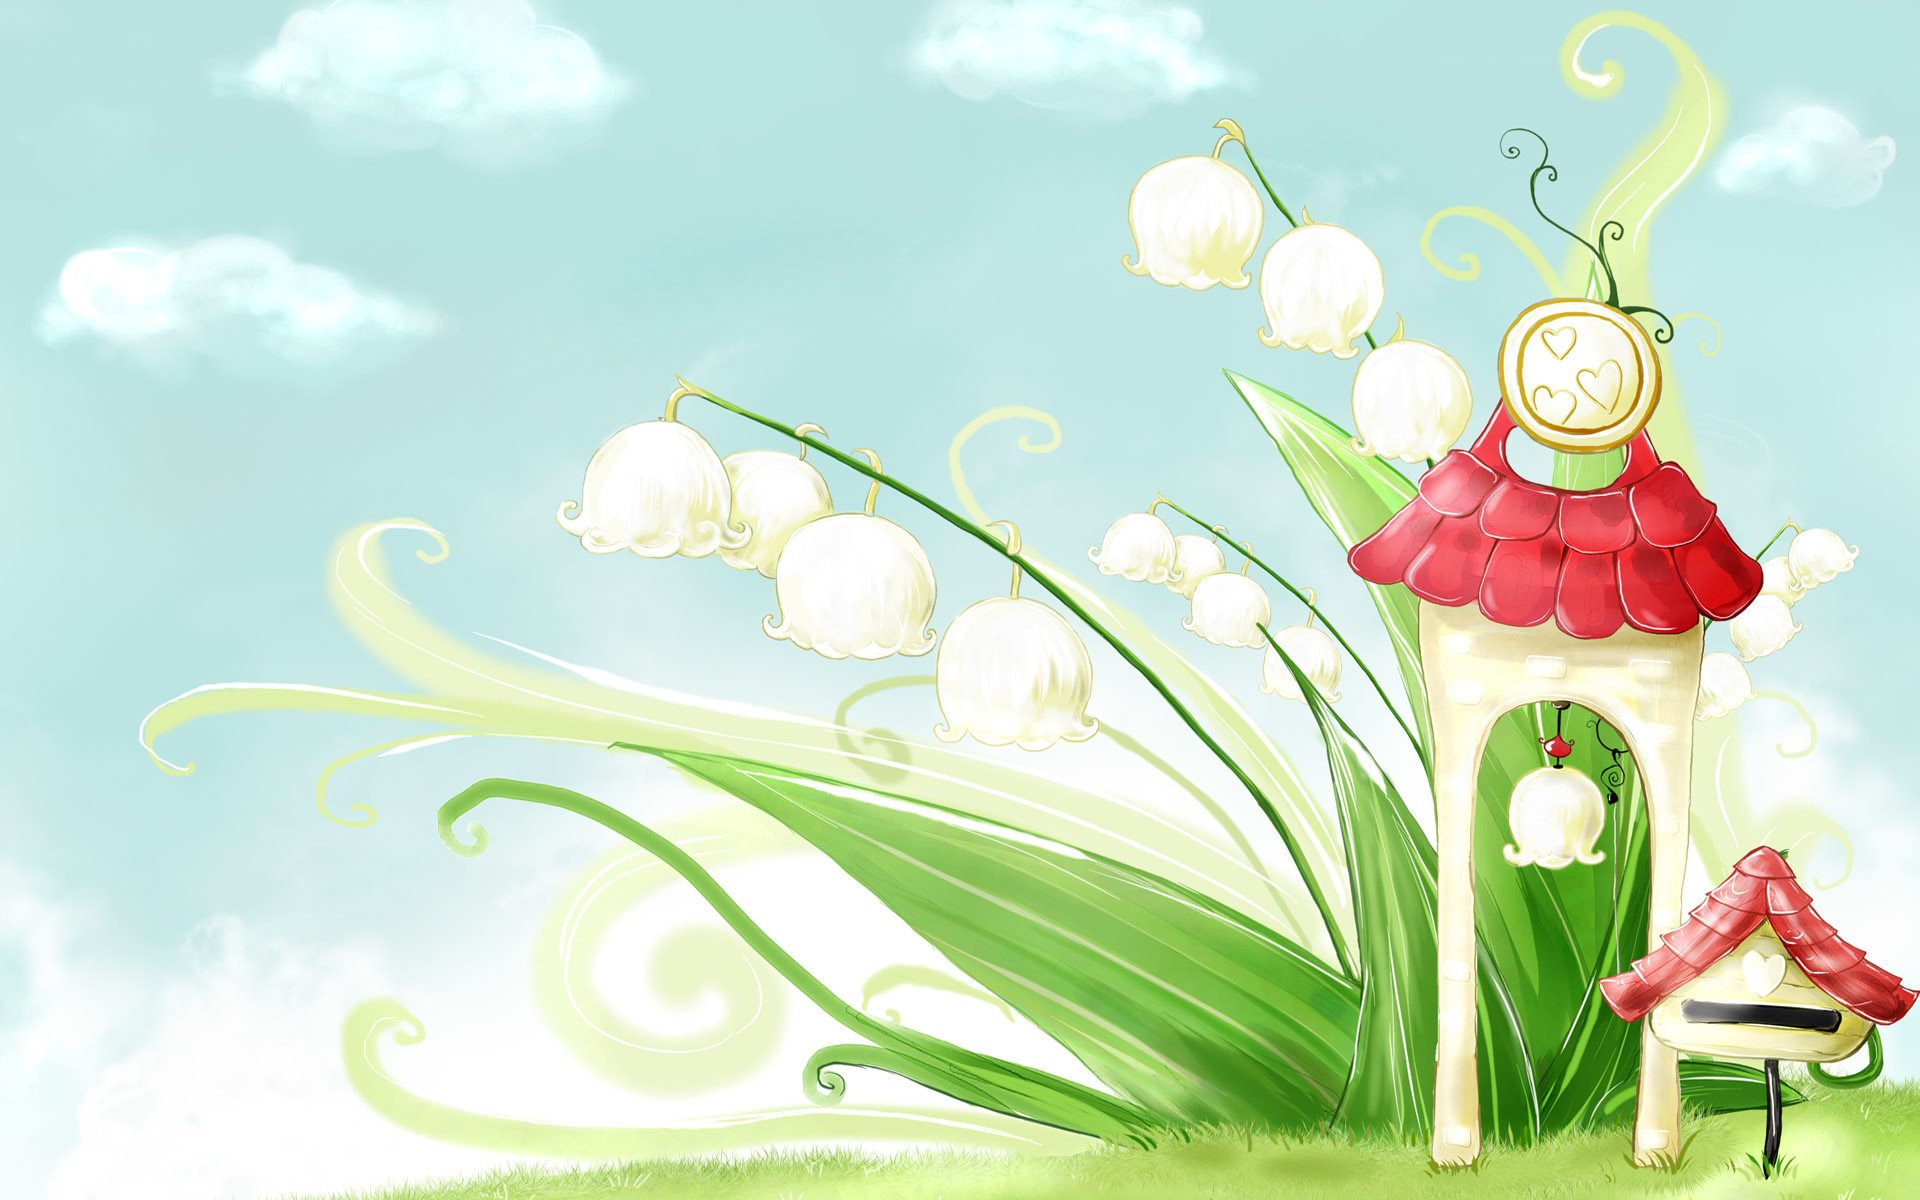 download the cutest wallpaper cute wallpaper share this cute 1920x1200